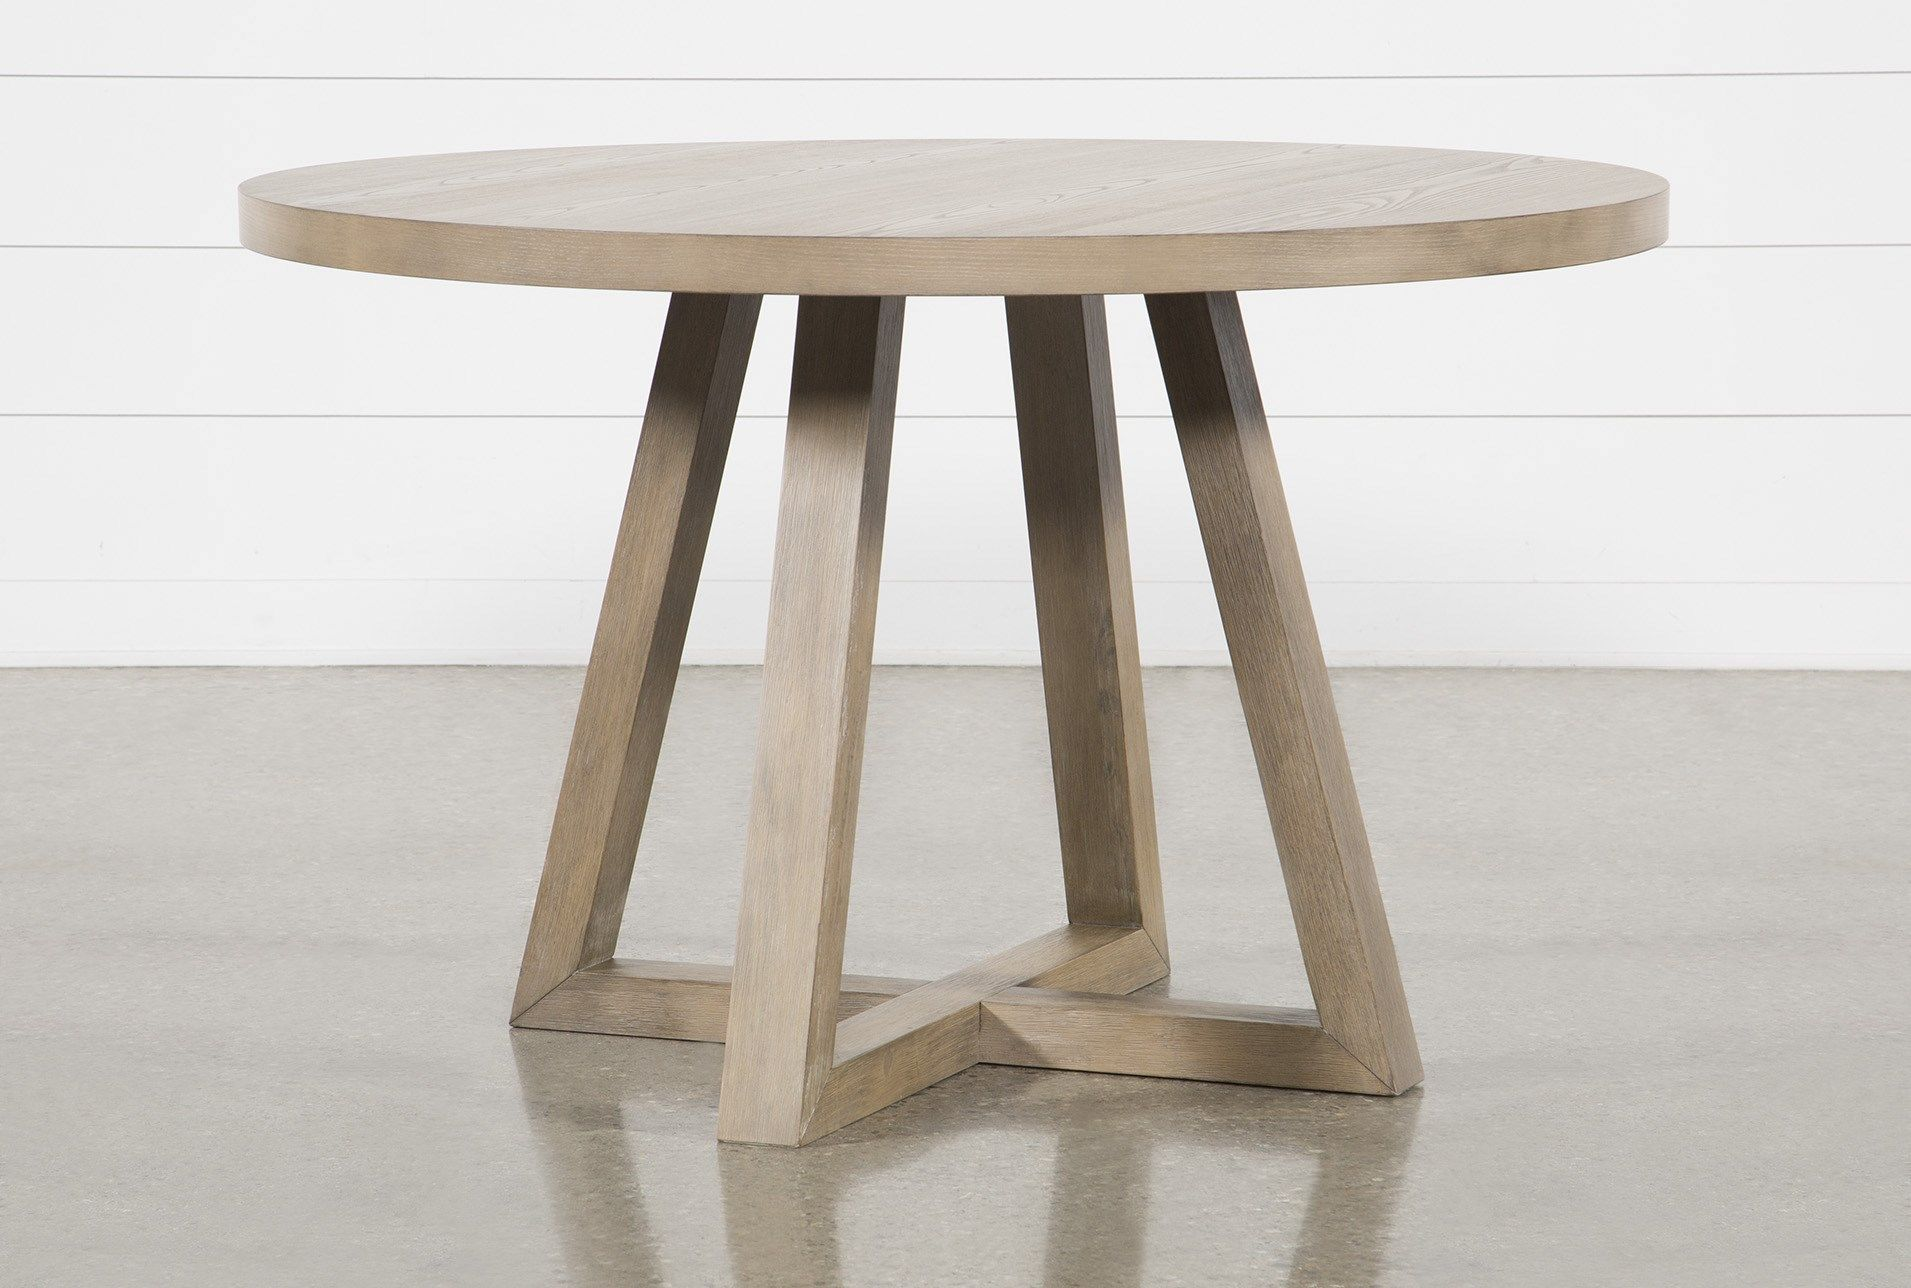 Lakeland Round Dining Table Dining Table Round Dining Round Dining Table